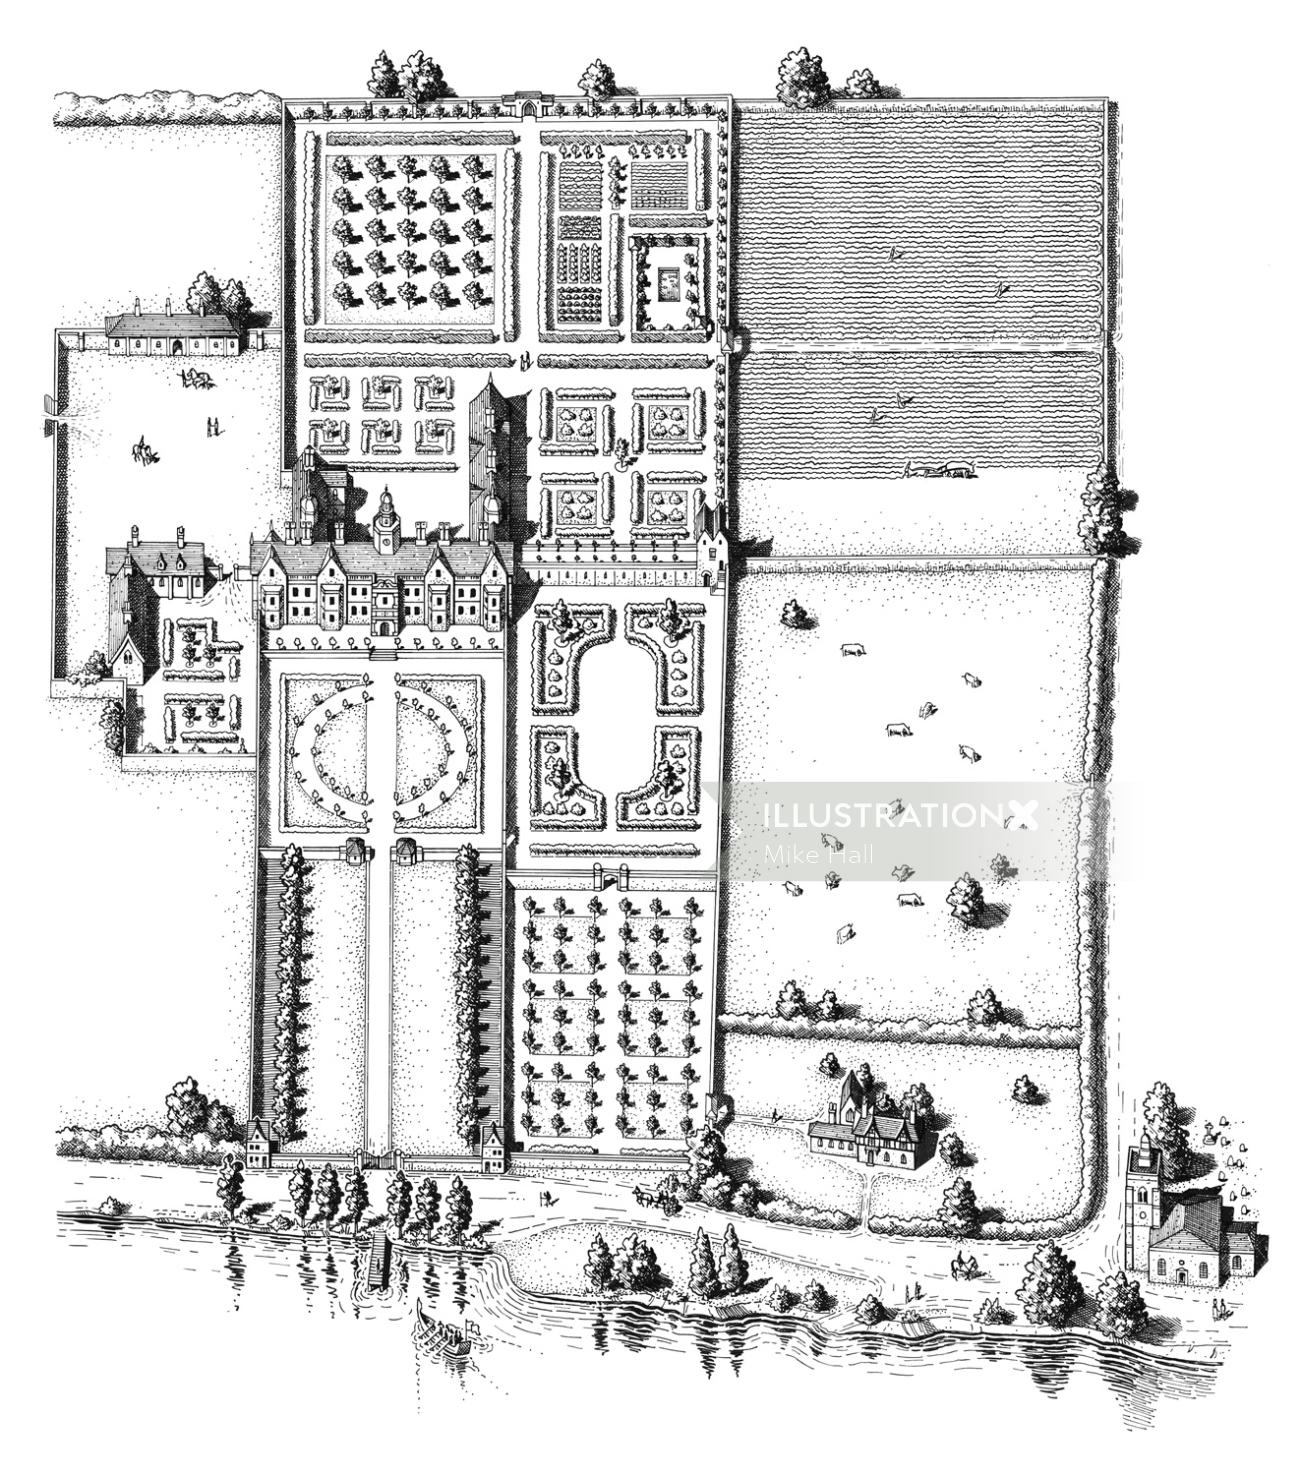 Thomas More's Chelsea Manor black and white drawing